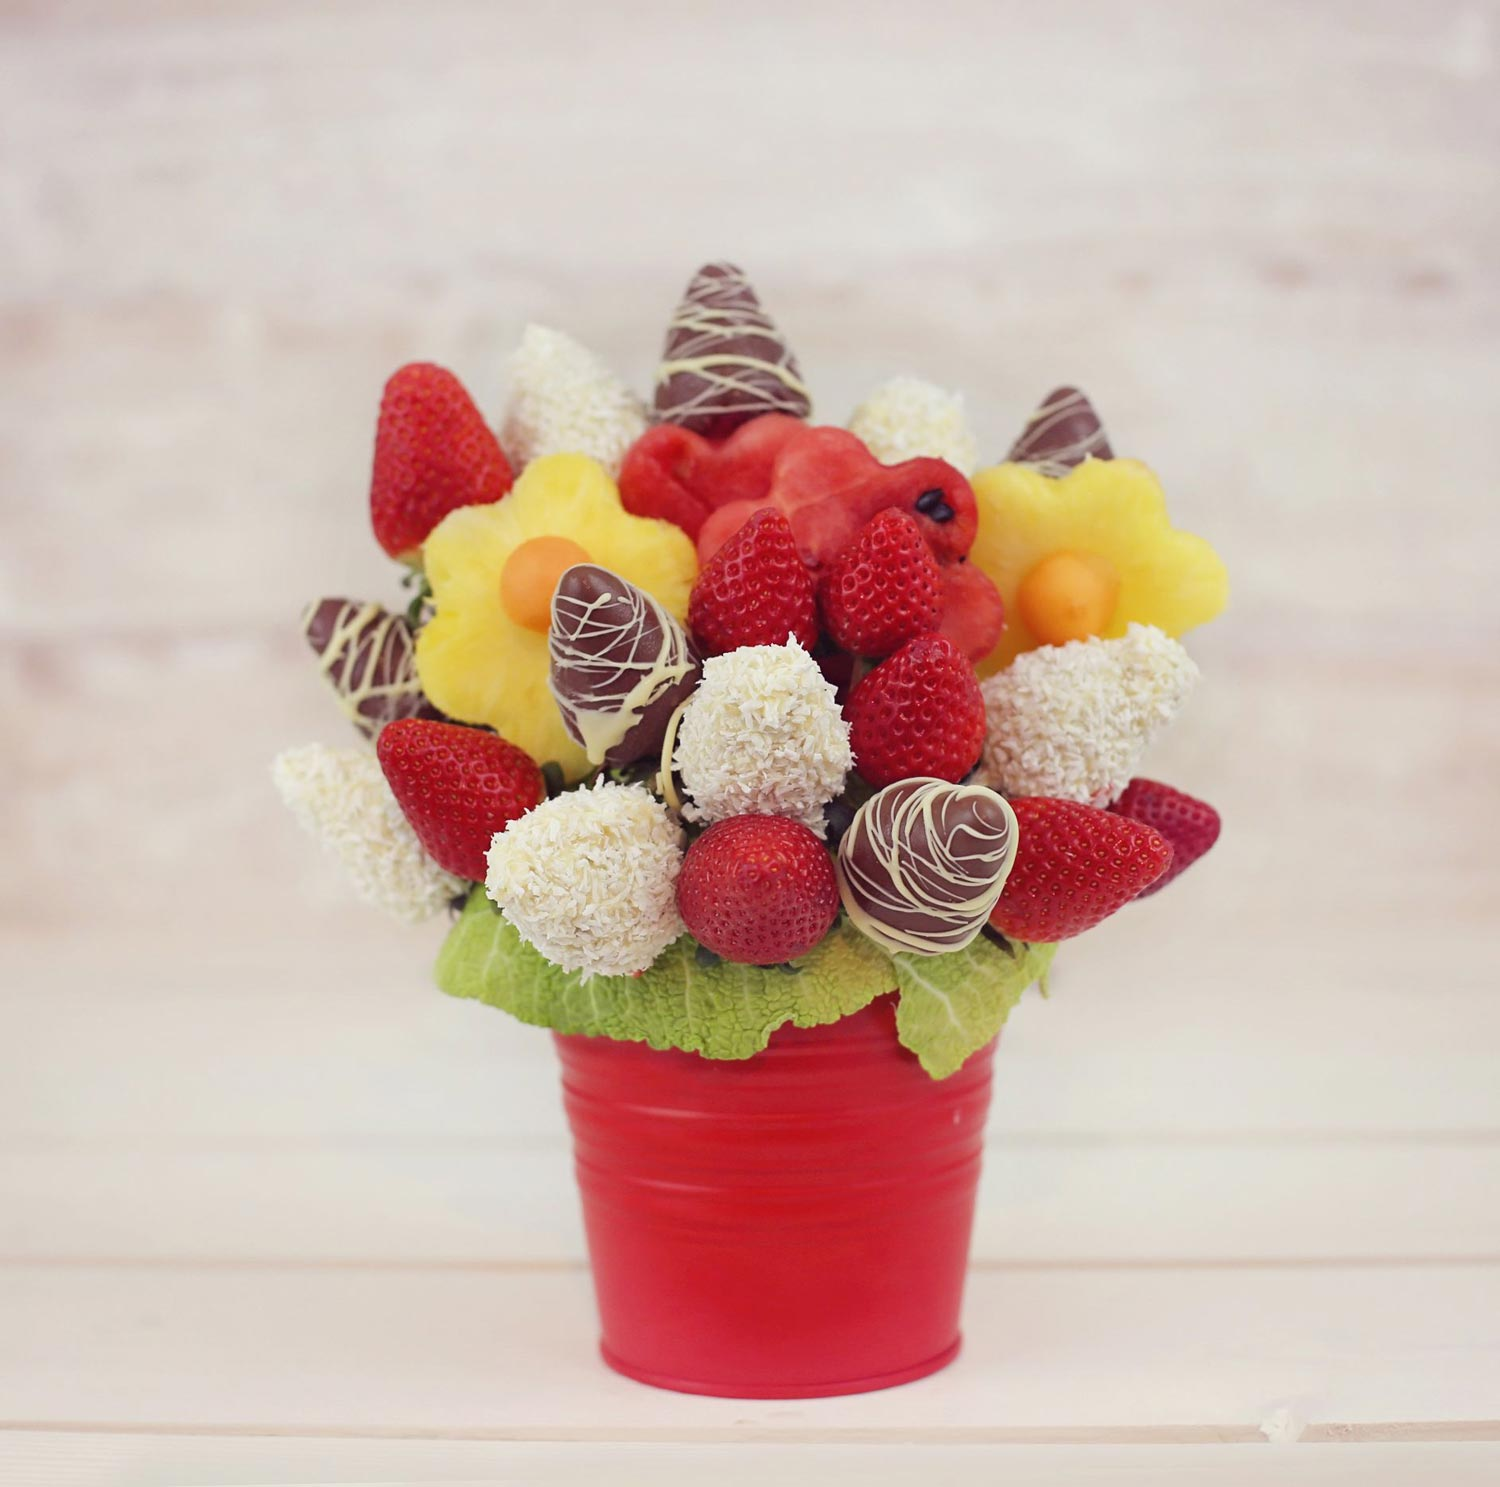 Taste of luxury edible fruit bouquet Fruit bouquet